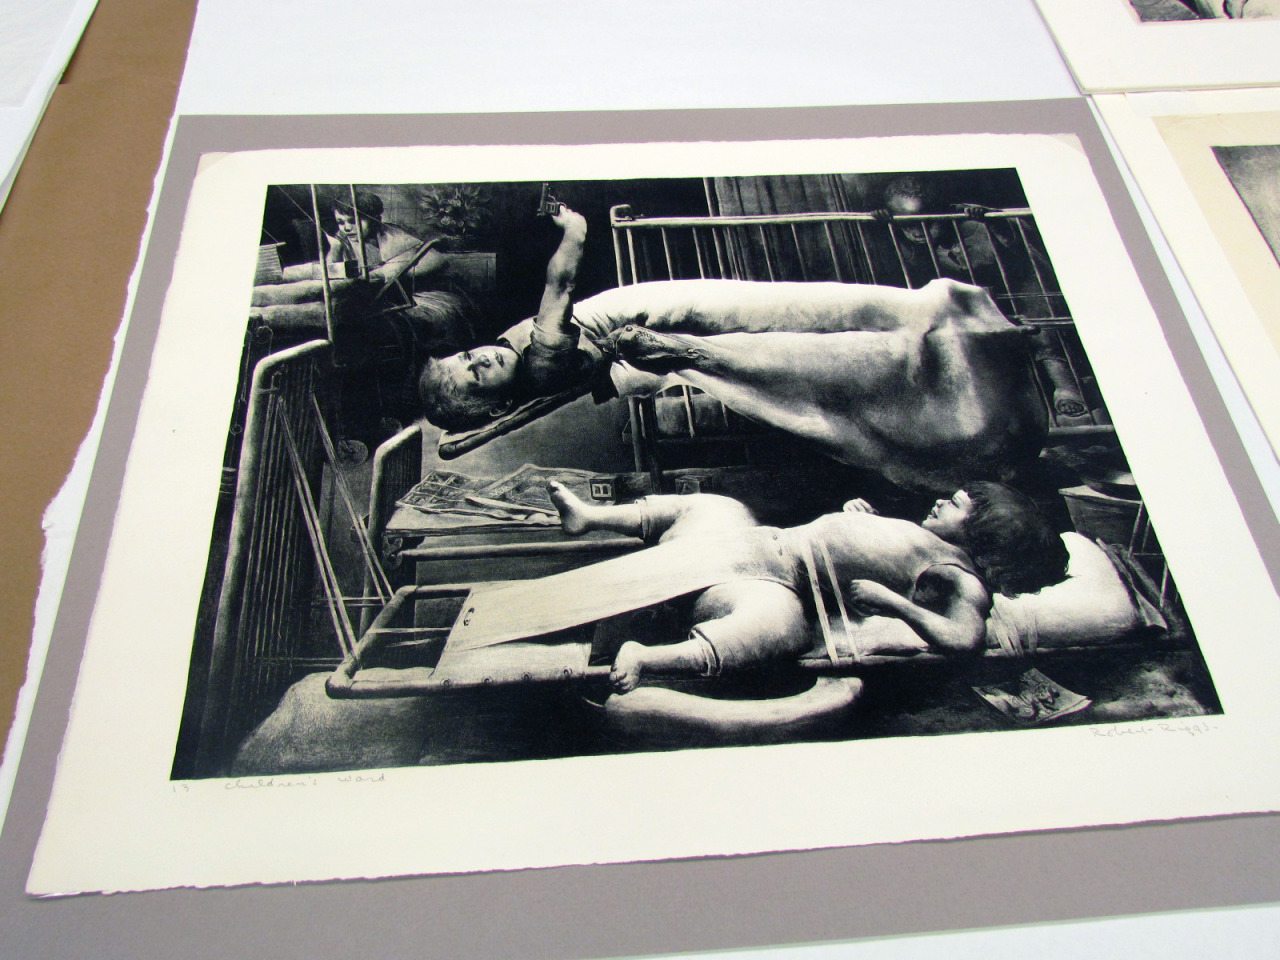 printstamps:  A day in the studio: George Bellows and Robert Riggs An amazing opportunity to see a set of original lithographs, brought in class today by Professor Endi Poskovic, by two giants of American printmaking, George Bellows and Robert Riggs. The work of these artists, their commitment to democratic medium of printmaking and social justice defined the search for new voice in American art during the interbellum period.